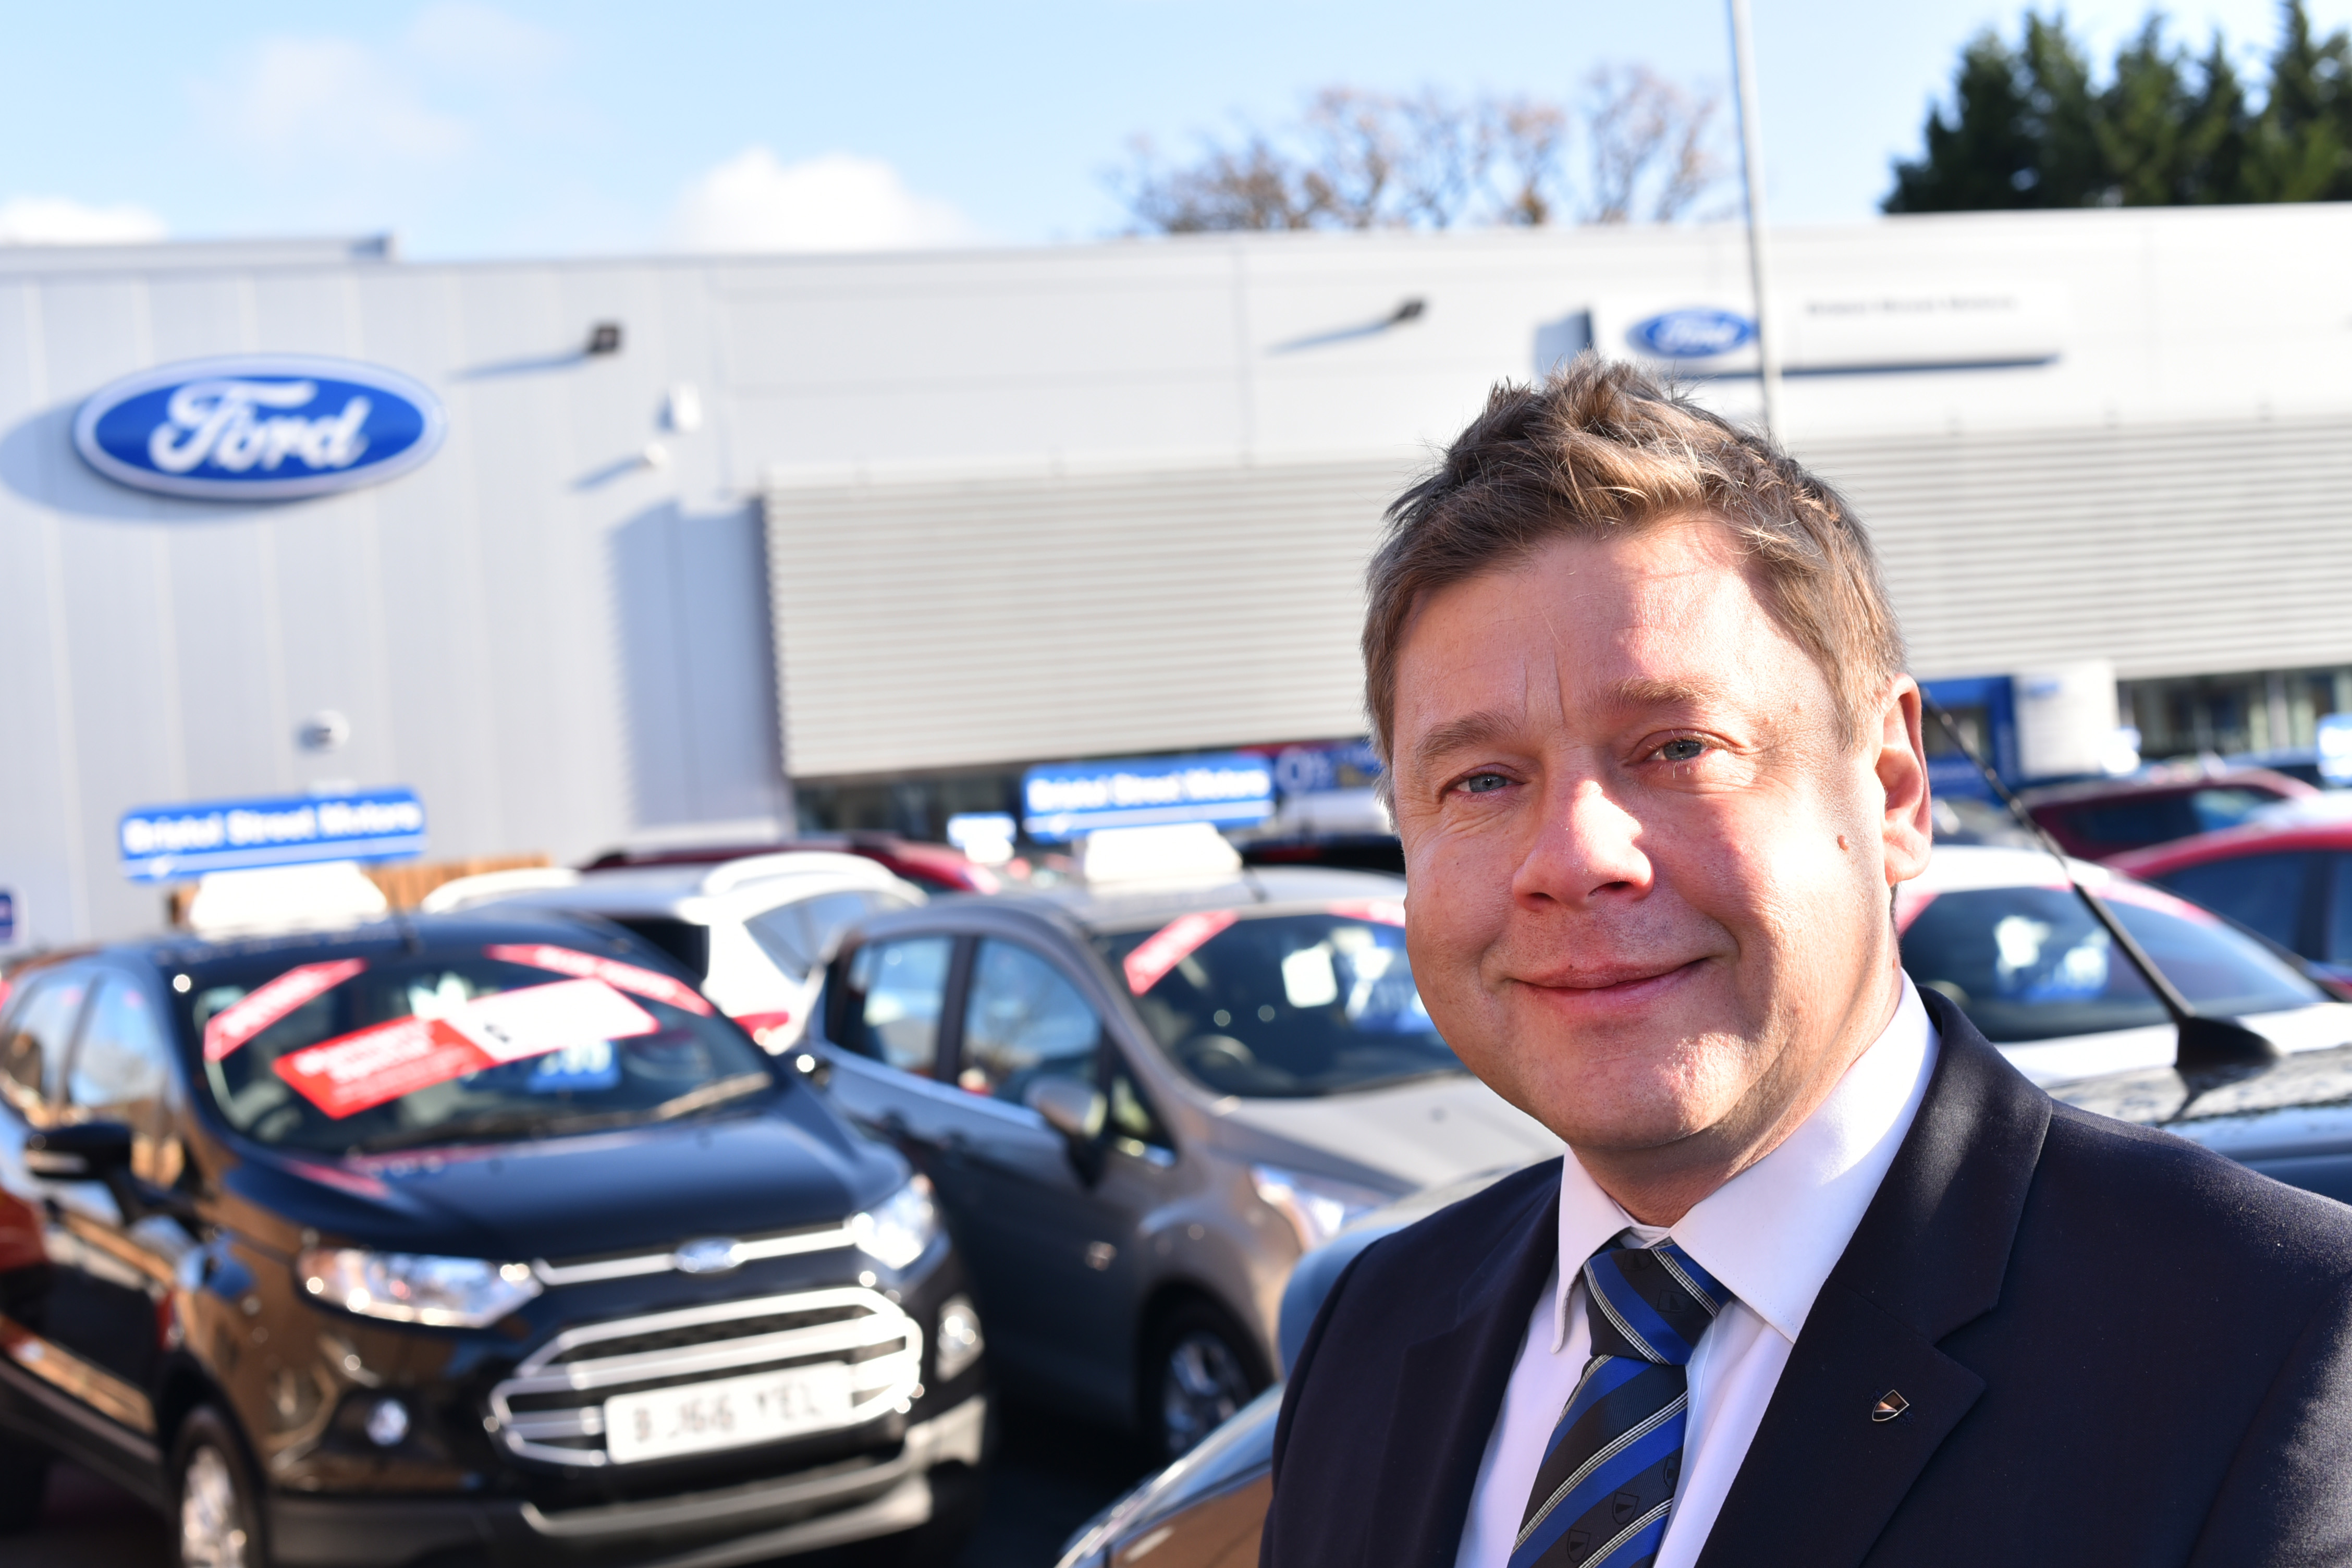 Shirley Ford unveils new £2m dealership